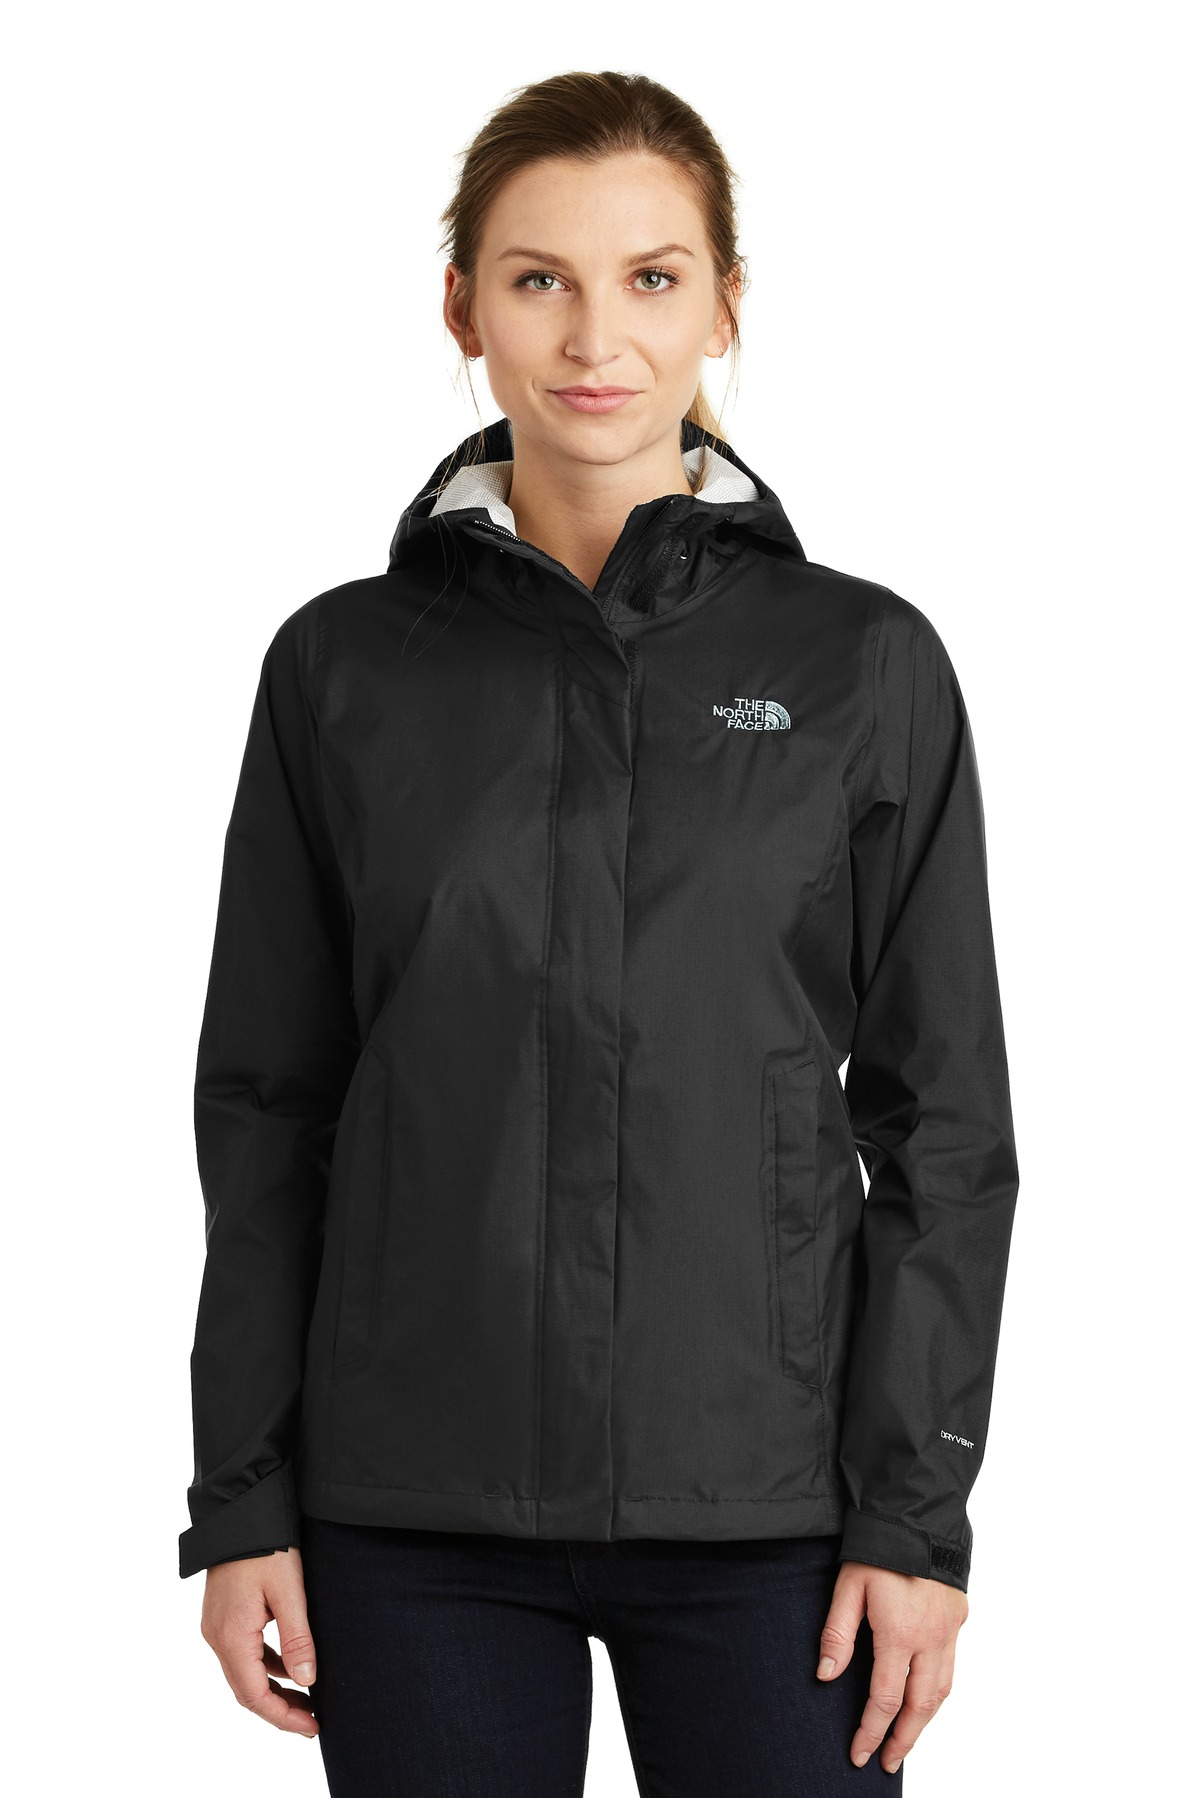 The North Face  ®  Ladies DryVent ™  Rain Jacket. NF0A3LH5 - TNF Black